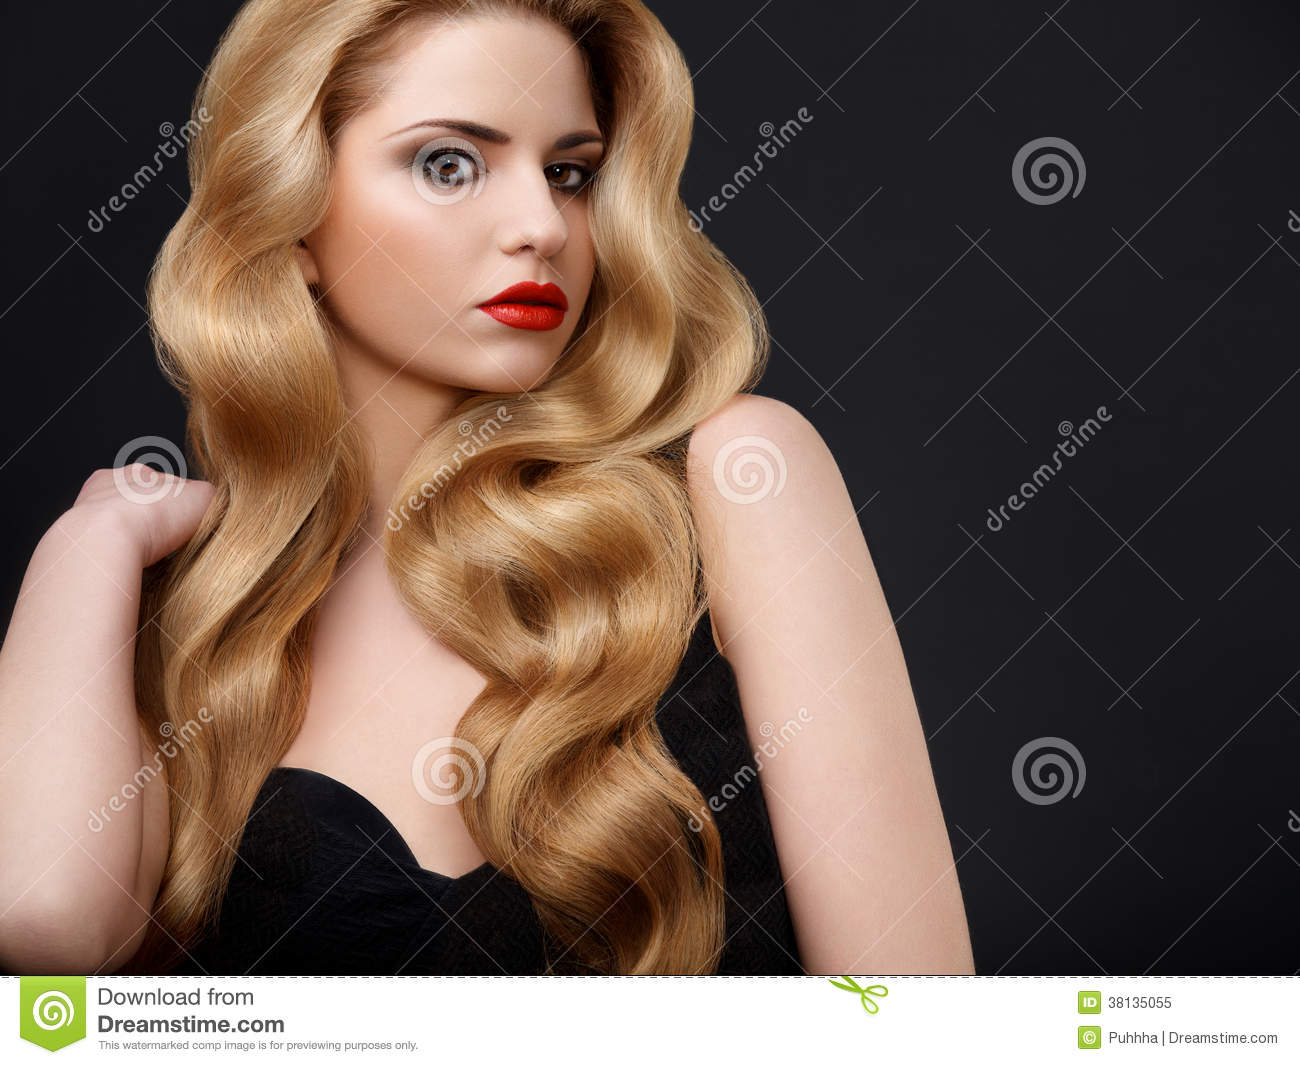 Blonde Hair Portrait Of Beautiful Woman With Long Wavy Hair - Wavy hair